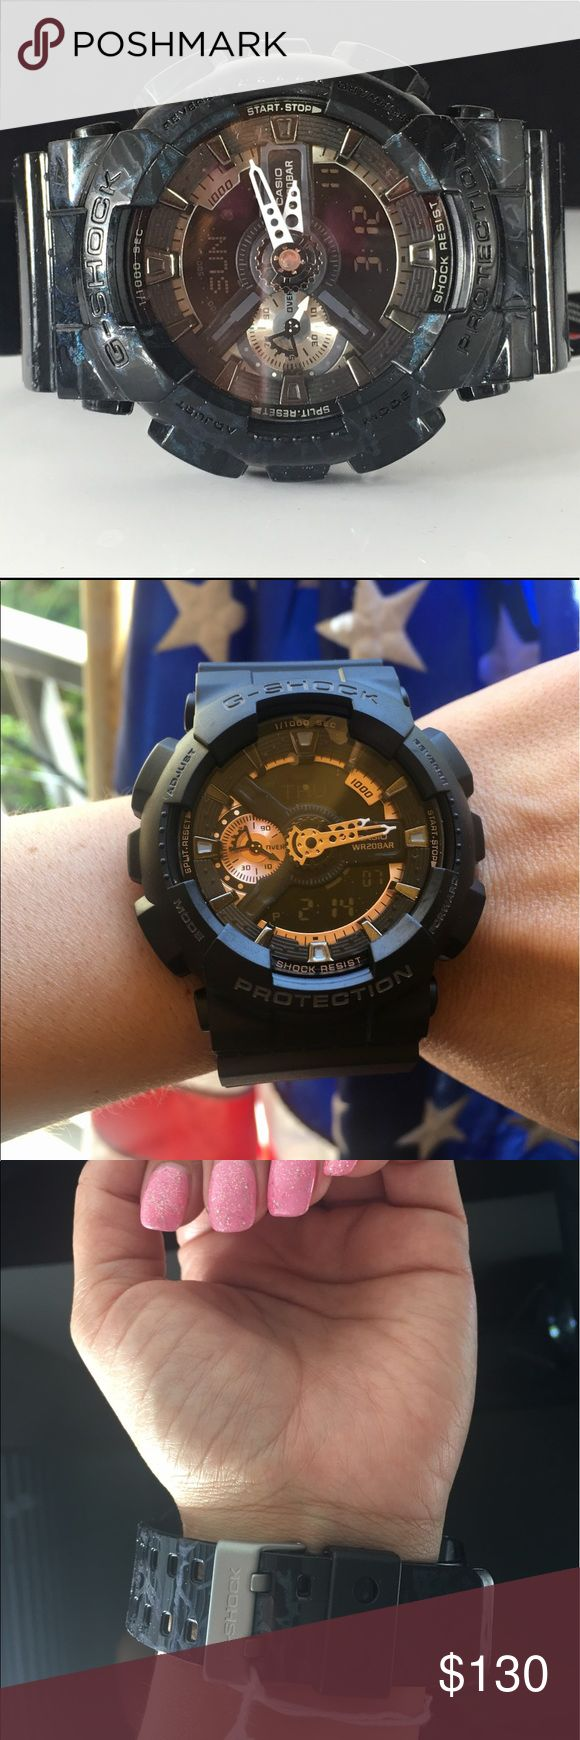 NWT Rugged Black Gold G Shock Men's Watch Casio Is this the best G Shock Men's Watch?  You decide!  Stylish Sport BLACK GOLD Watch Module No. 5146 5425 200 m Water Resistance Auto Light World Time 1/1000 Sec Stopwatch Speed Indicator Casio Accessories Watches